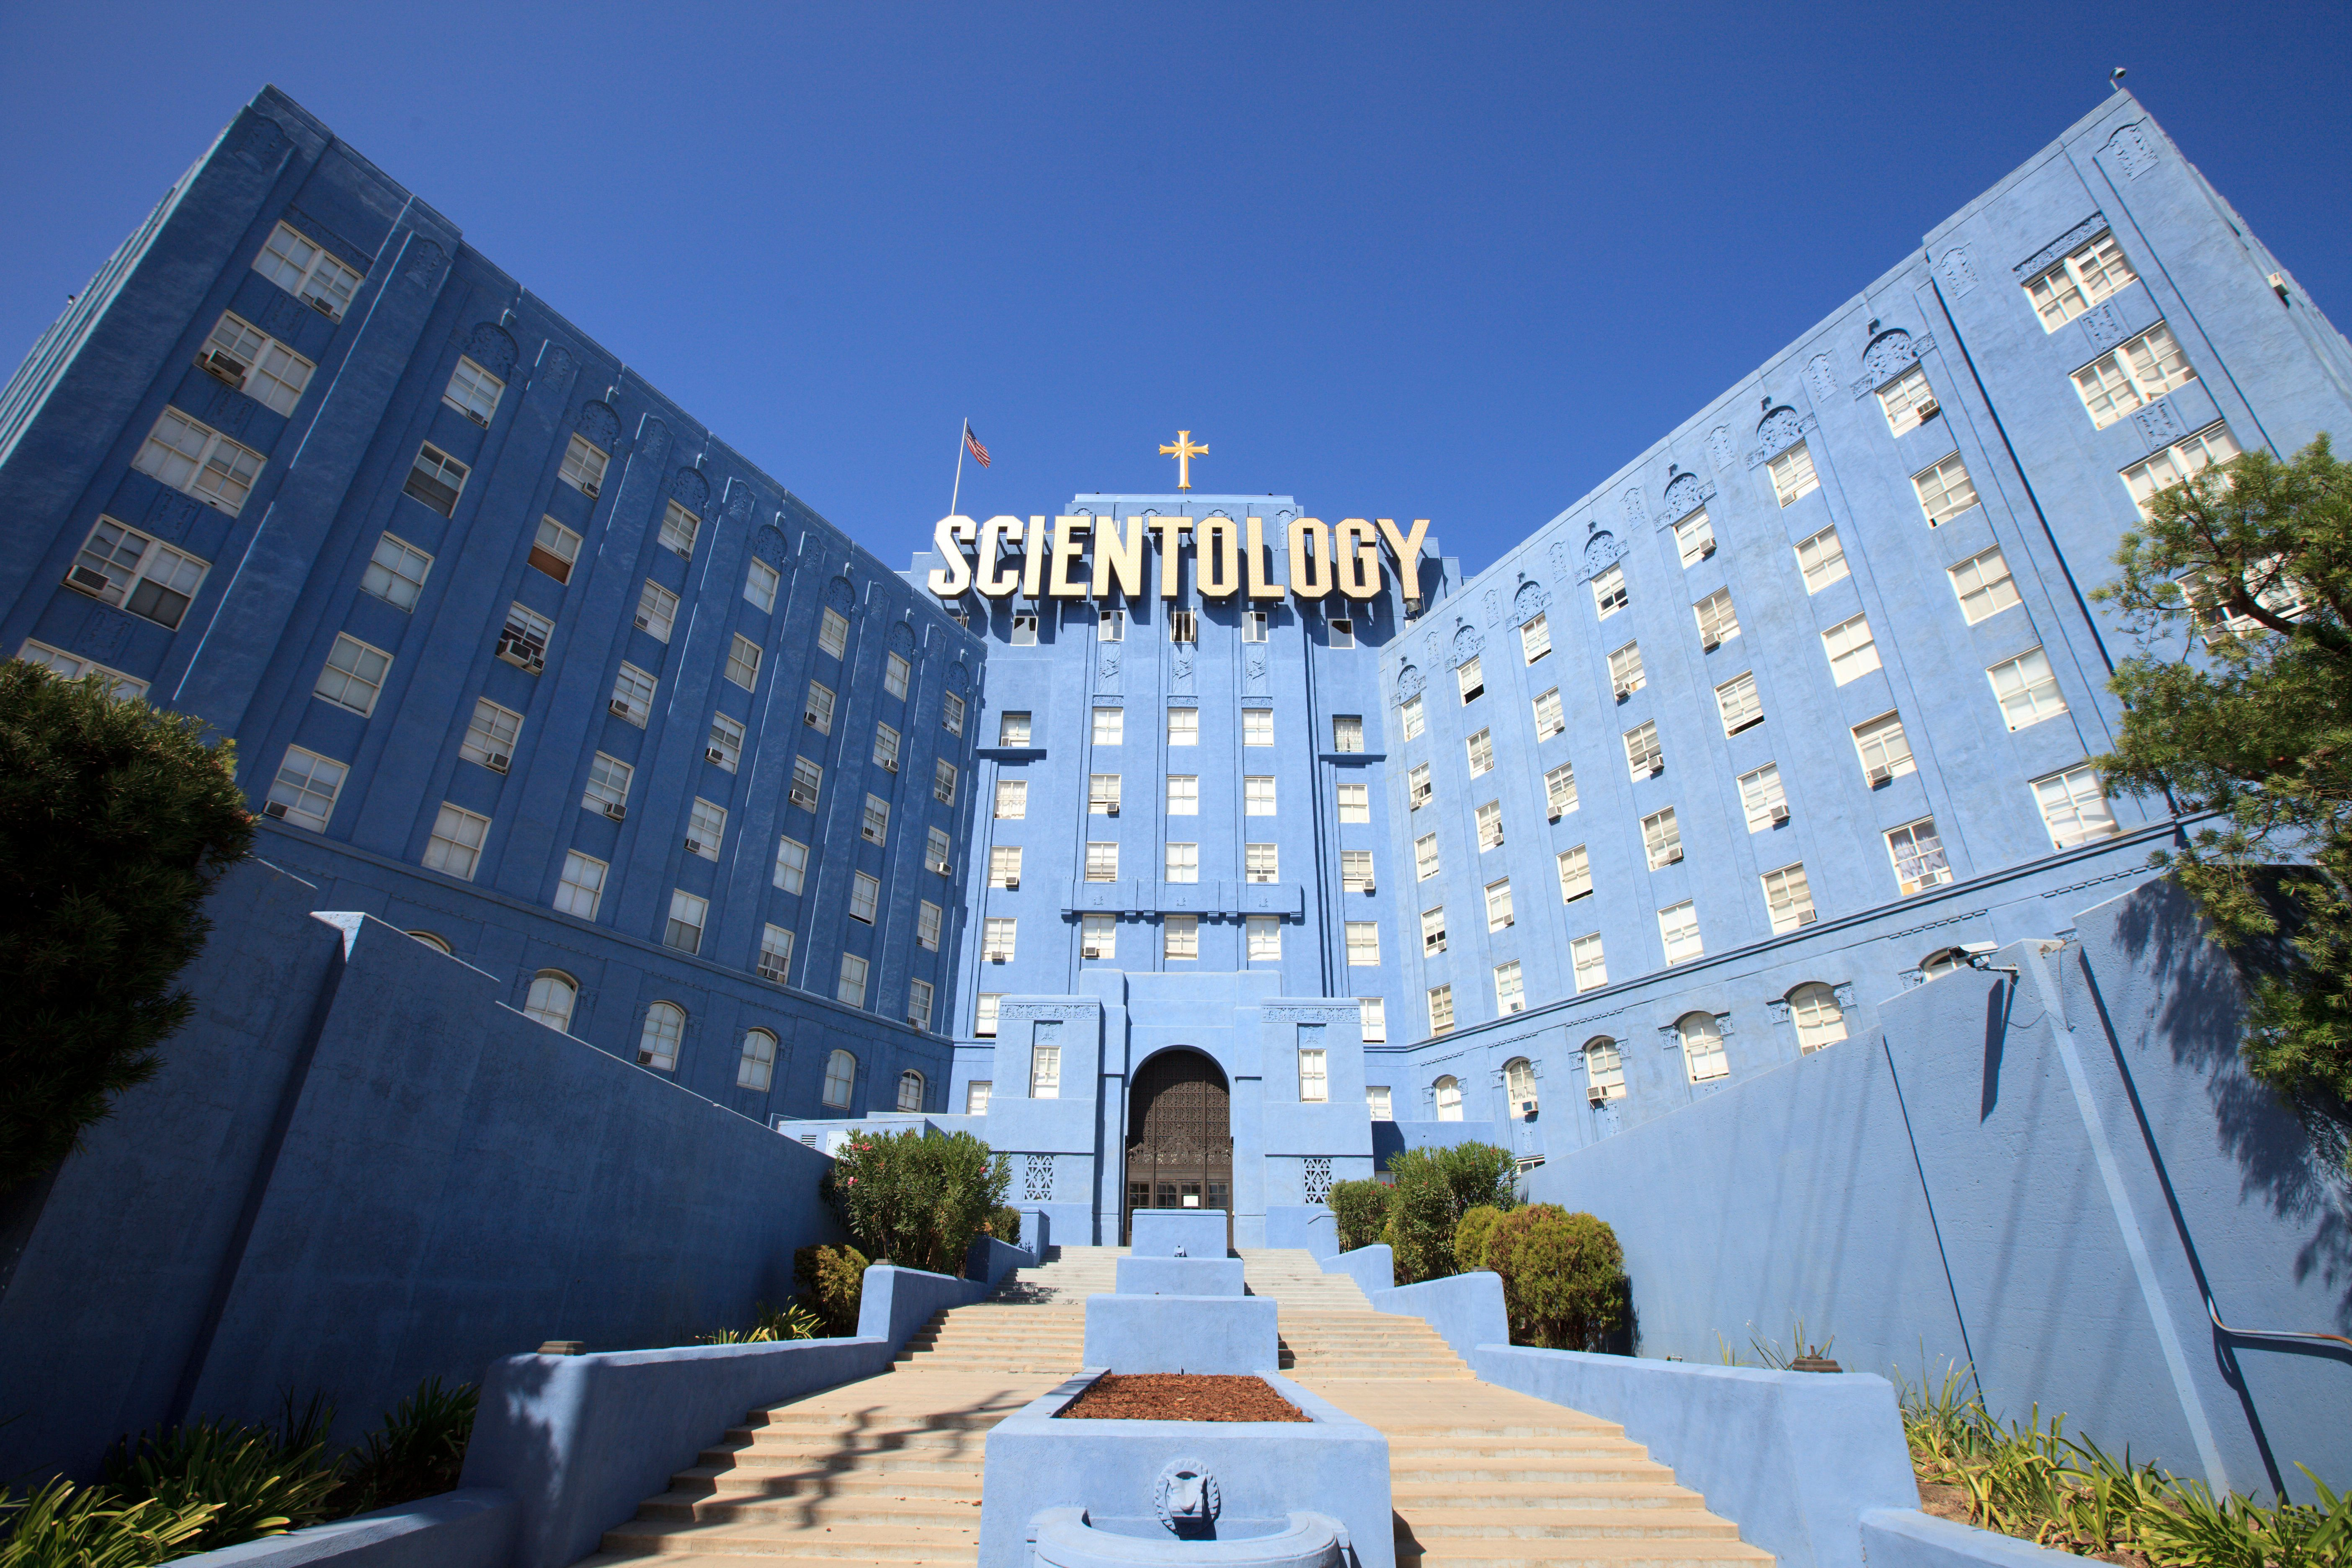 View of the Church of Scientology building in Los Angeles, California. (Photo by Paul Mounce/Corbis via Getty Images)